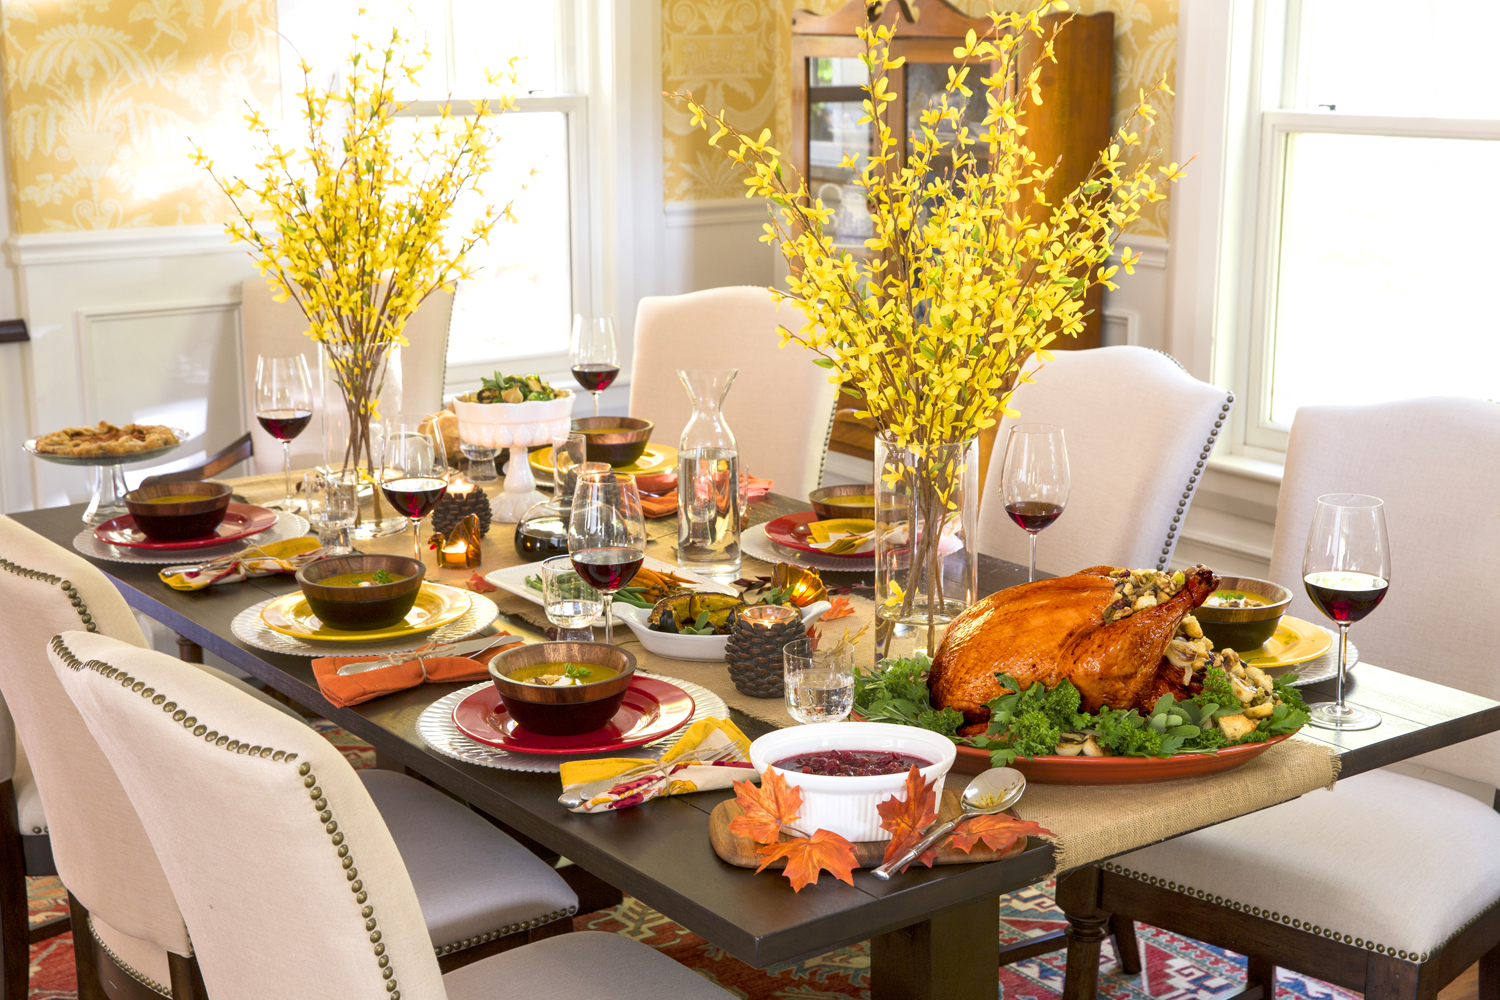 10 tips for decorating and setting your thanksgiving table - Thanksgiving dinner table decorations ...